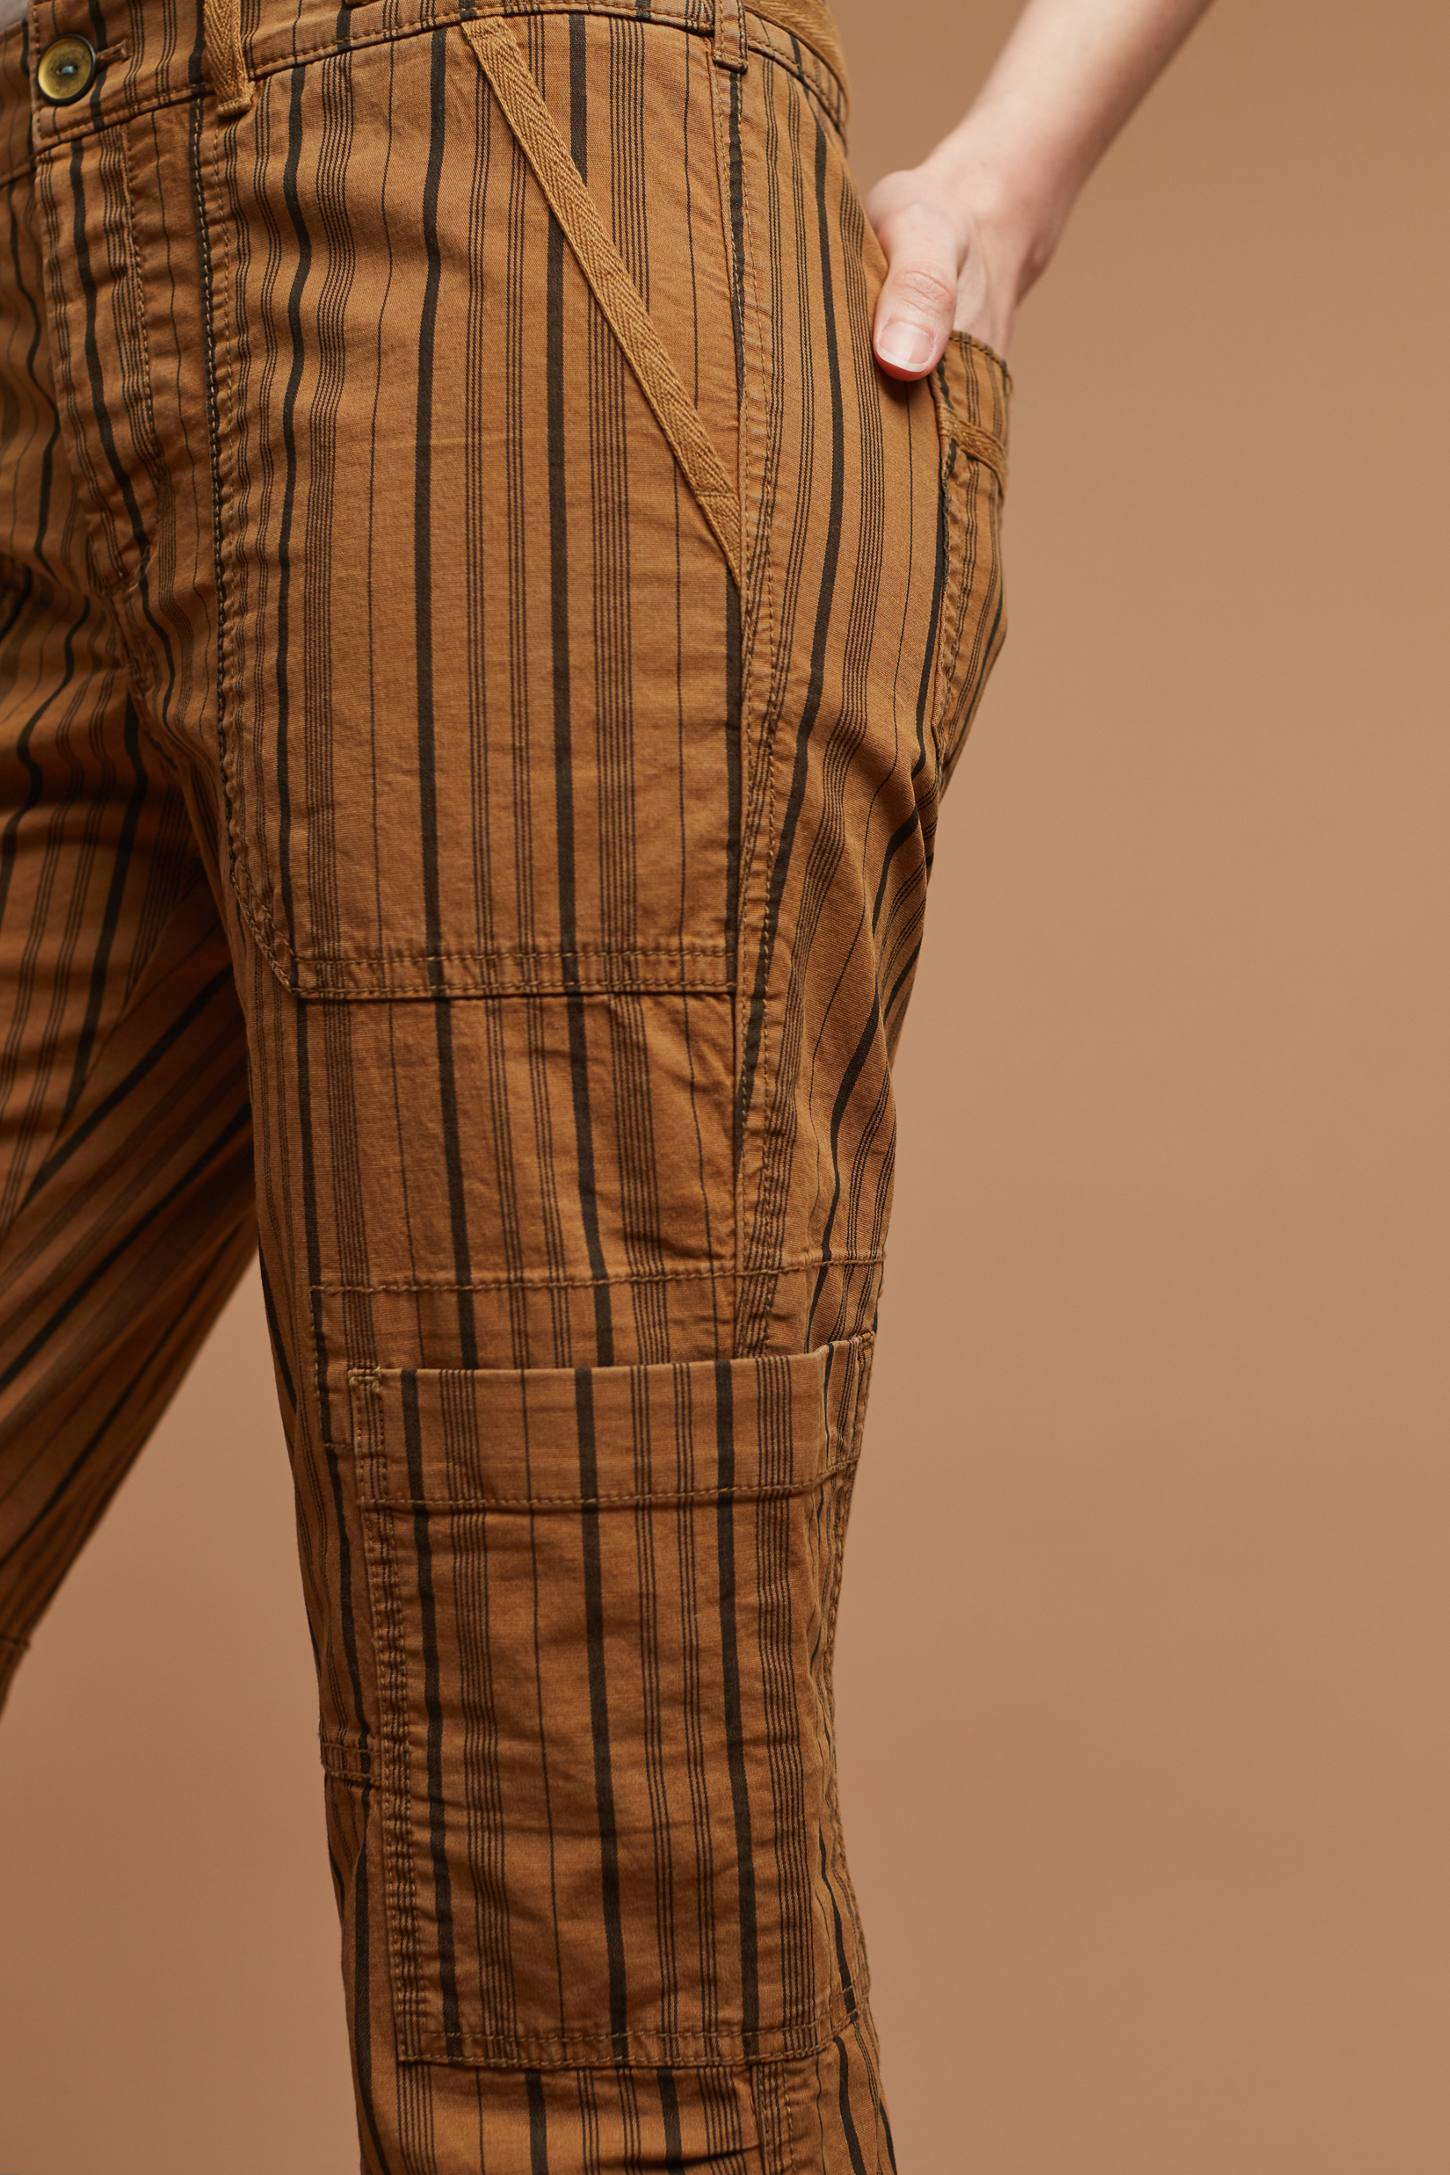 Slide View: 2: Wanderer Striped Cargo Pants